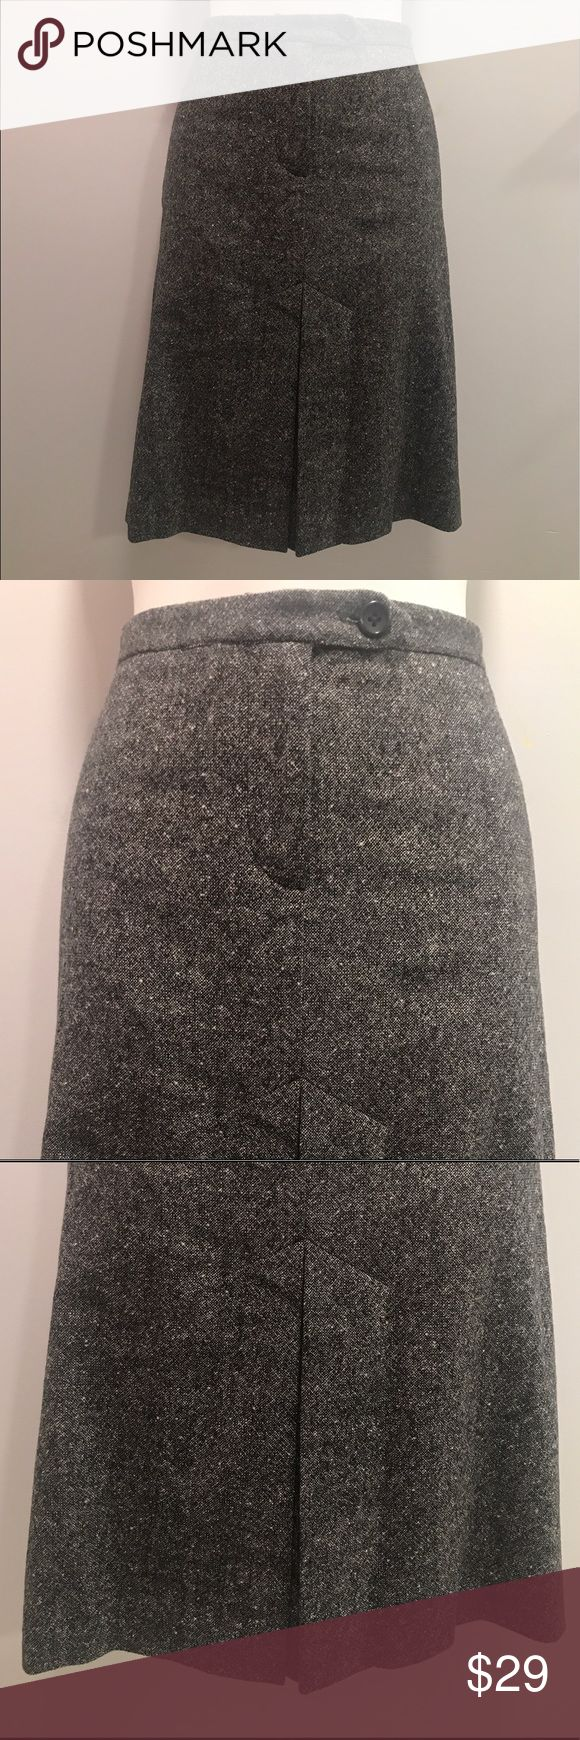 French connection wool/laine/nylon pencil skirt-4 This beautiful pencil skirt hits at the knees with a button and center pleat for some added flare. It's a unique skirt that flatters the hips while enhancing your elegance. Perfect for work and an evening stroll. French Connection Skirts Pencil